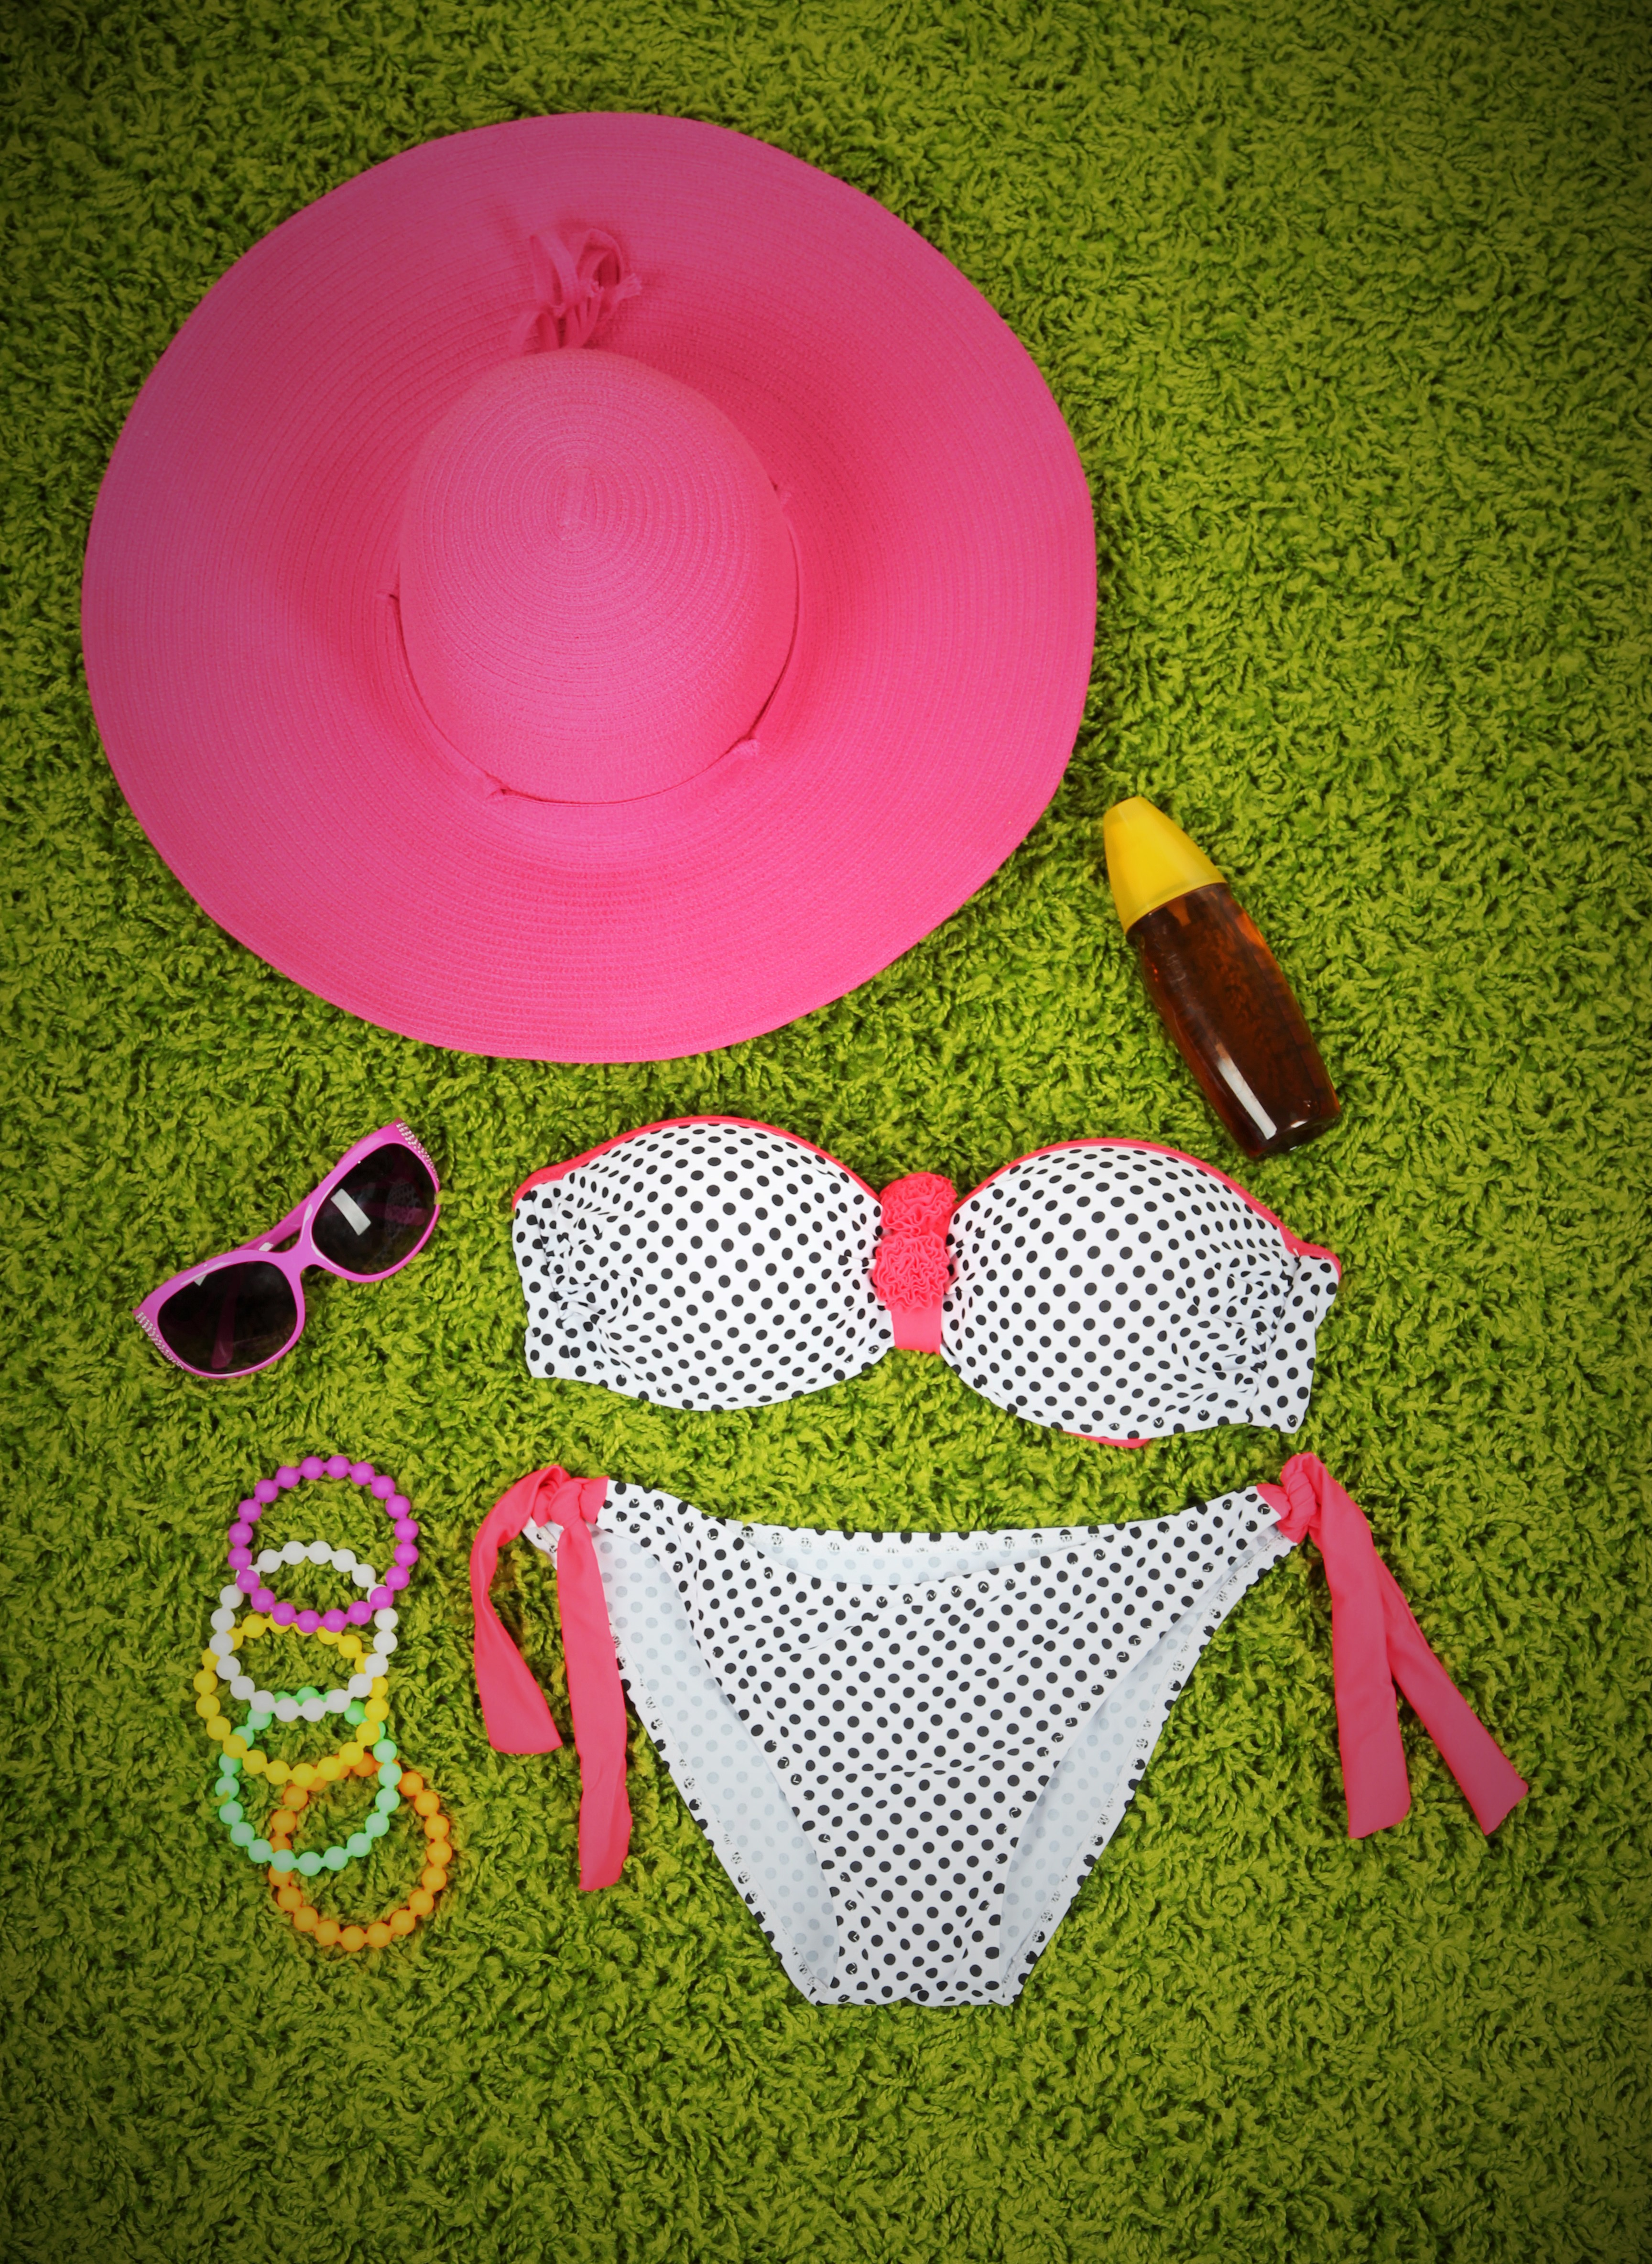 Swimsuit and beach items on green background